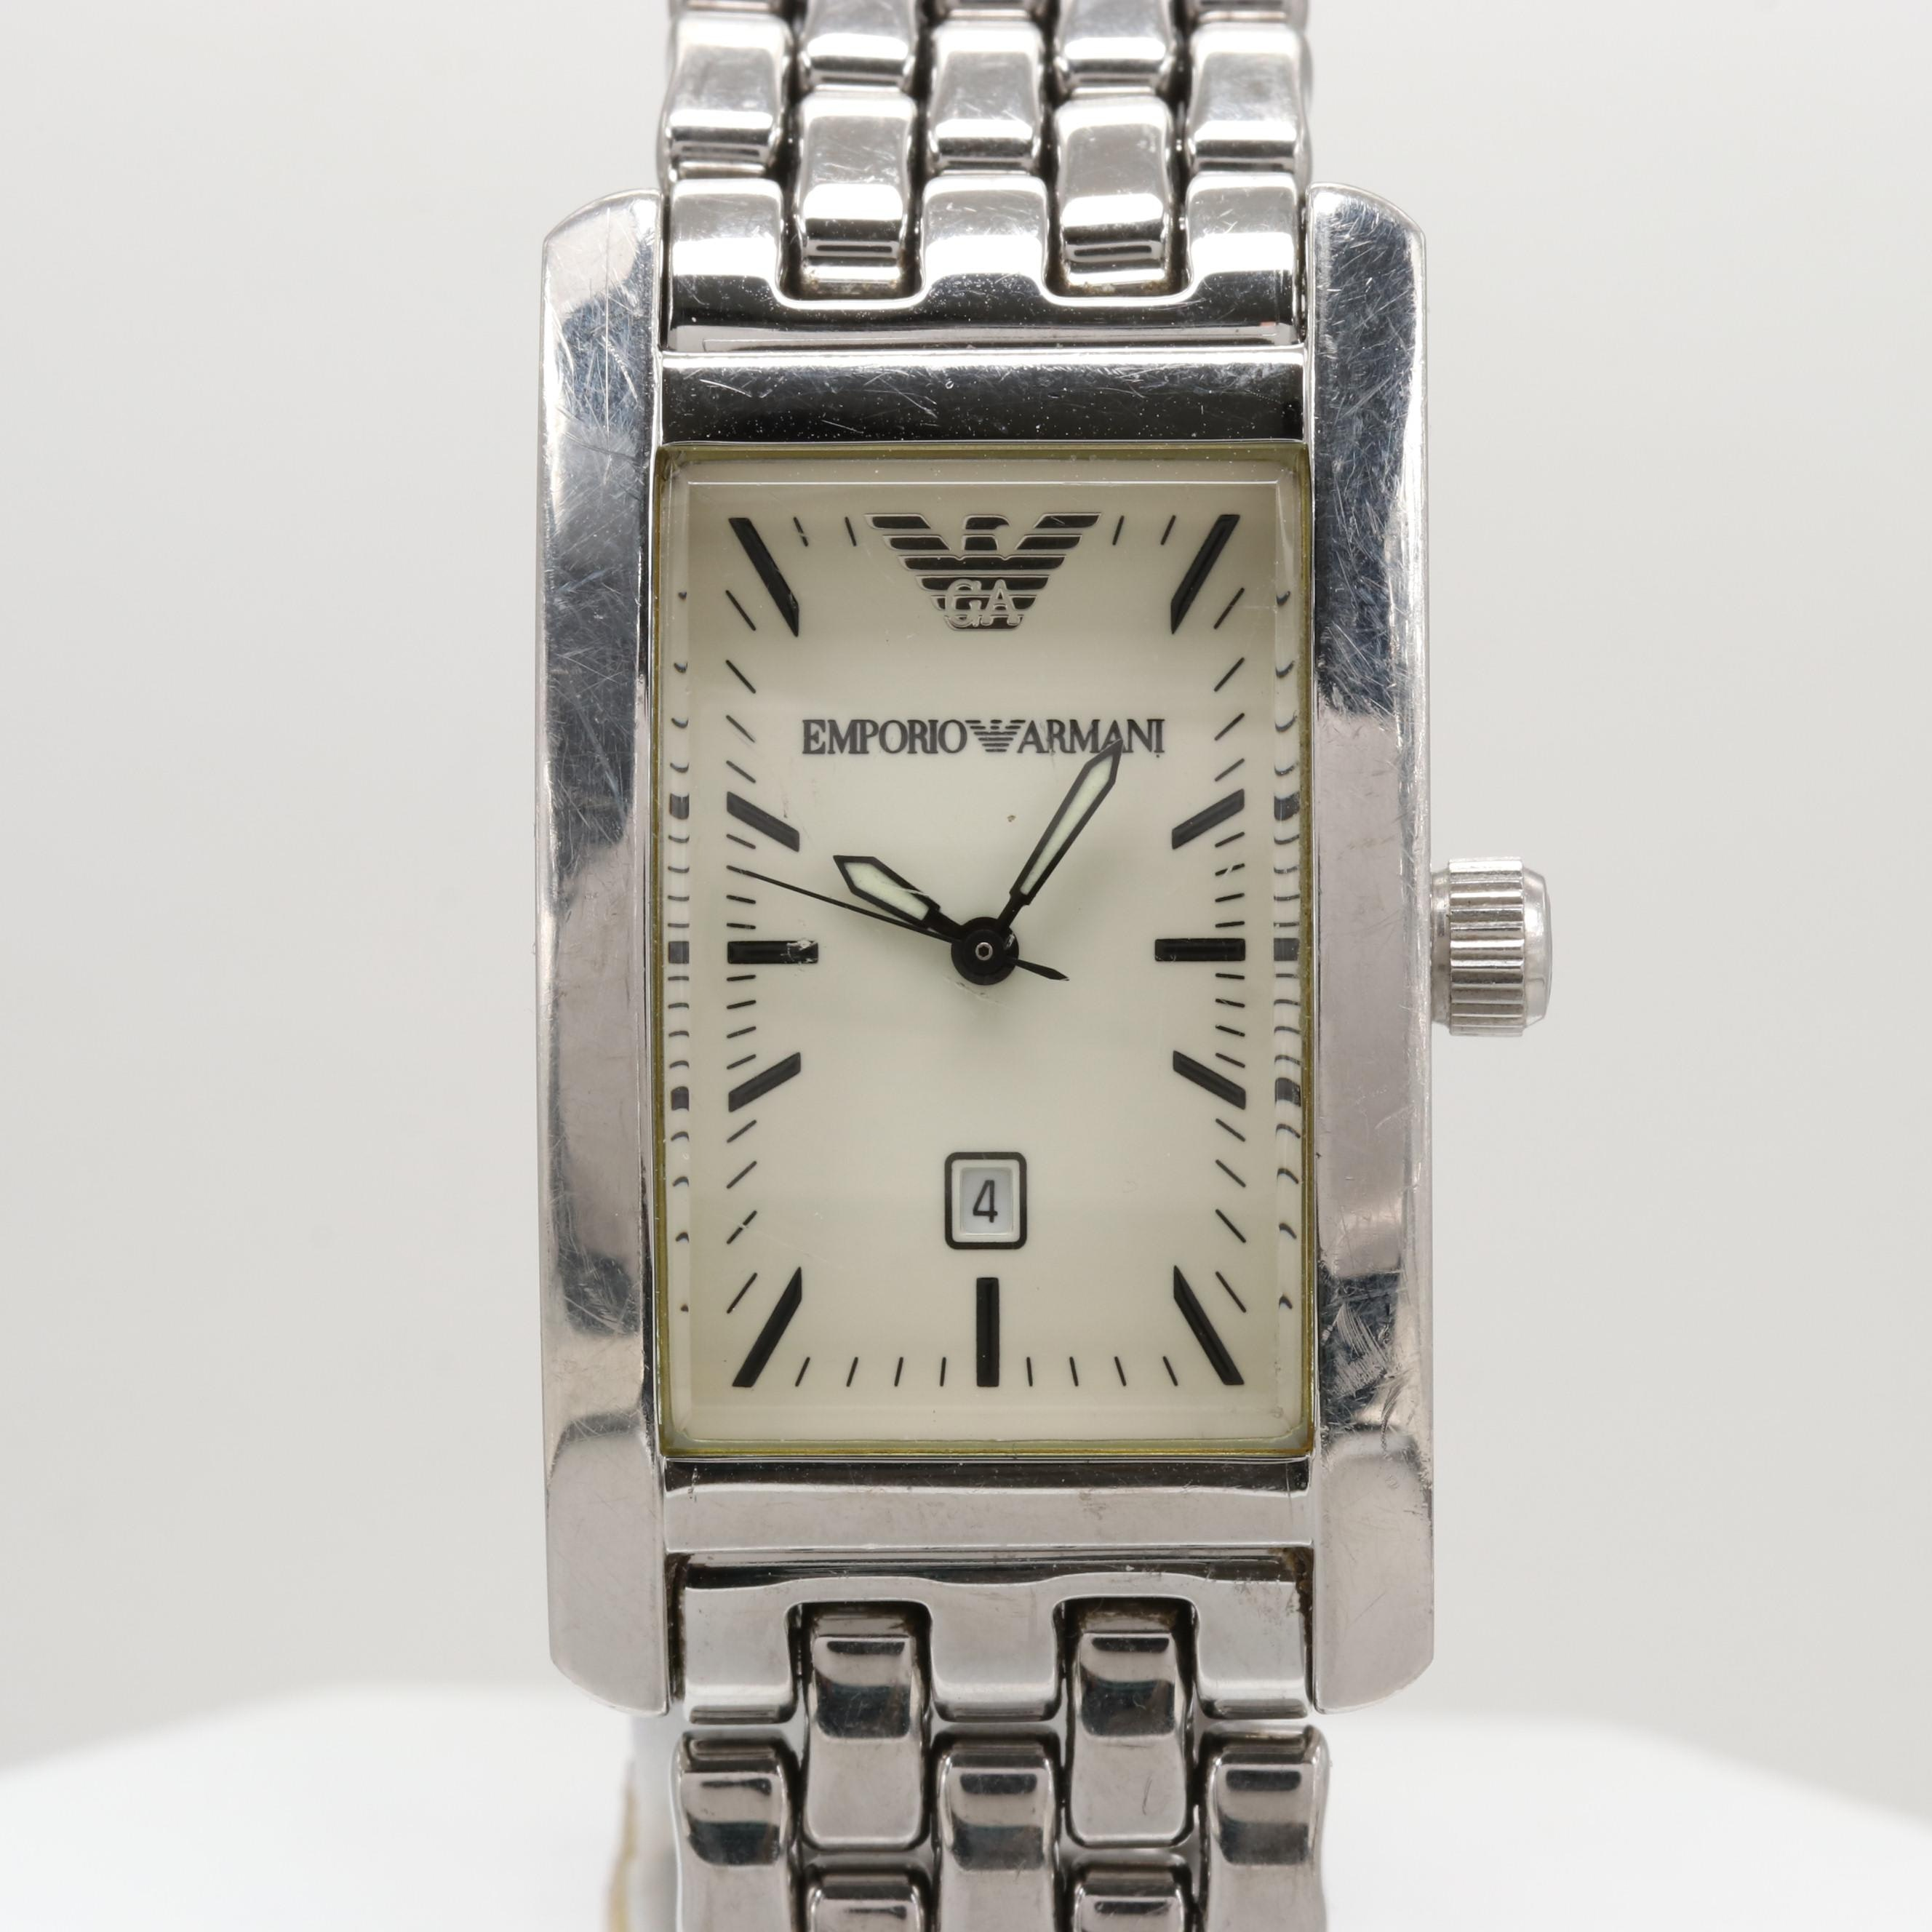 Emporio Armani Stainless Steel Wristwatch With Date Window